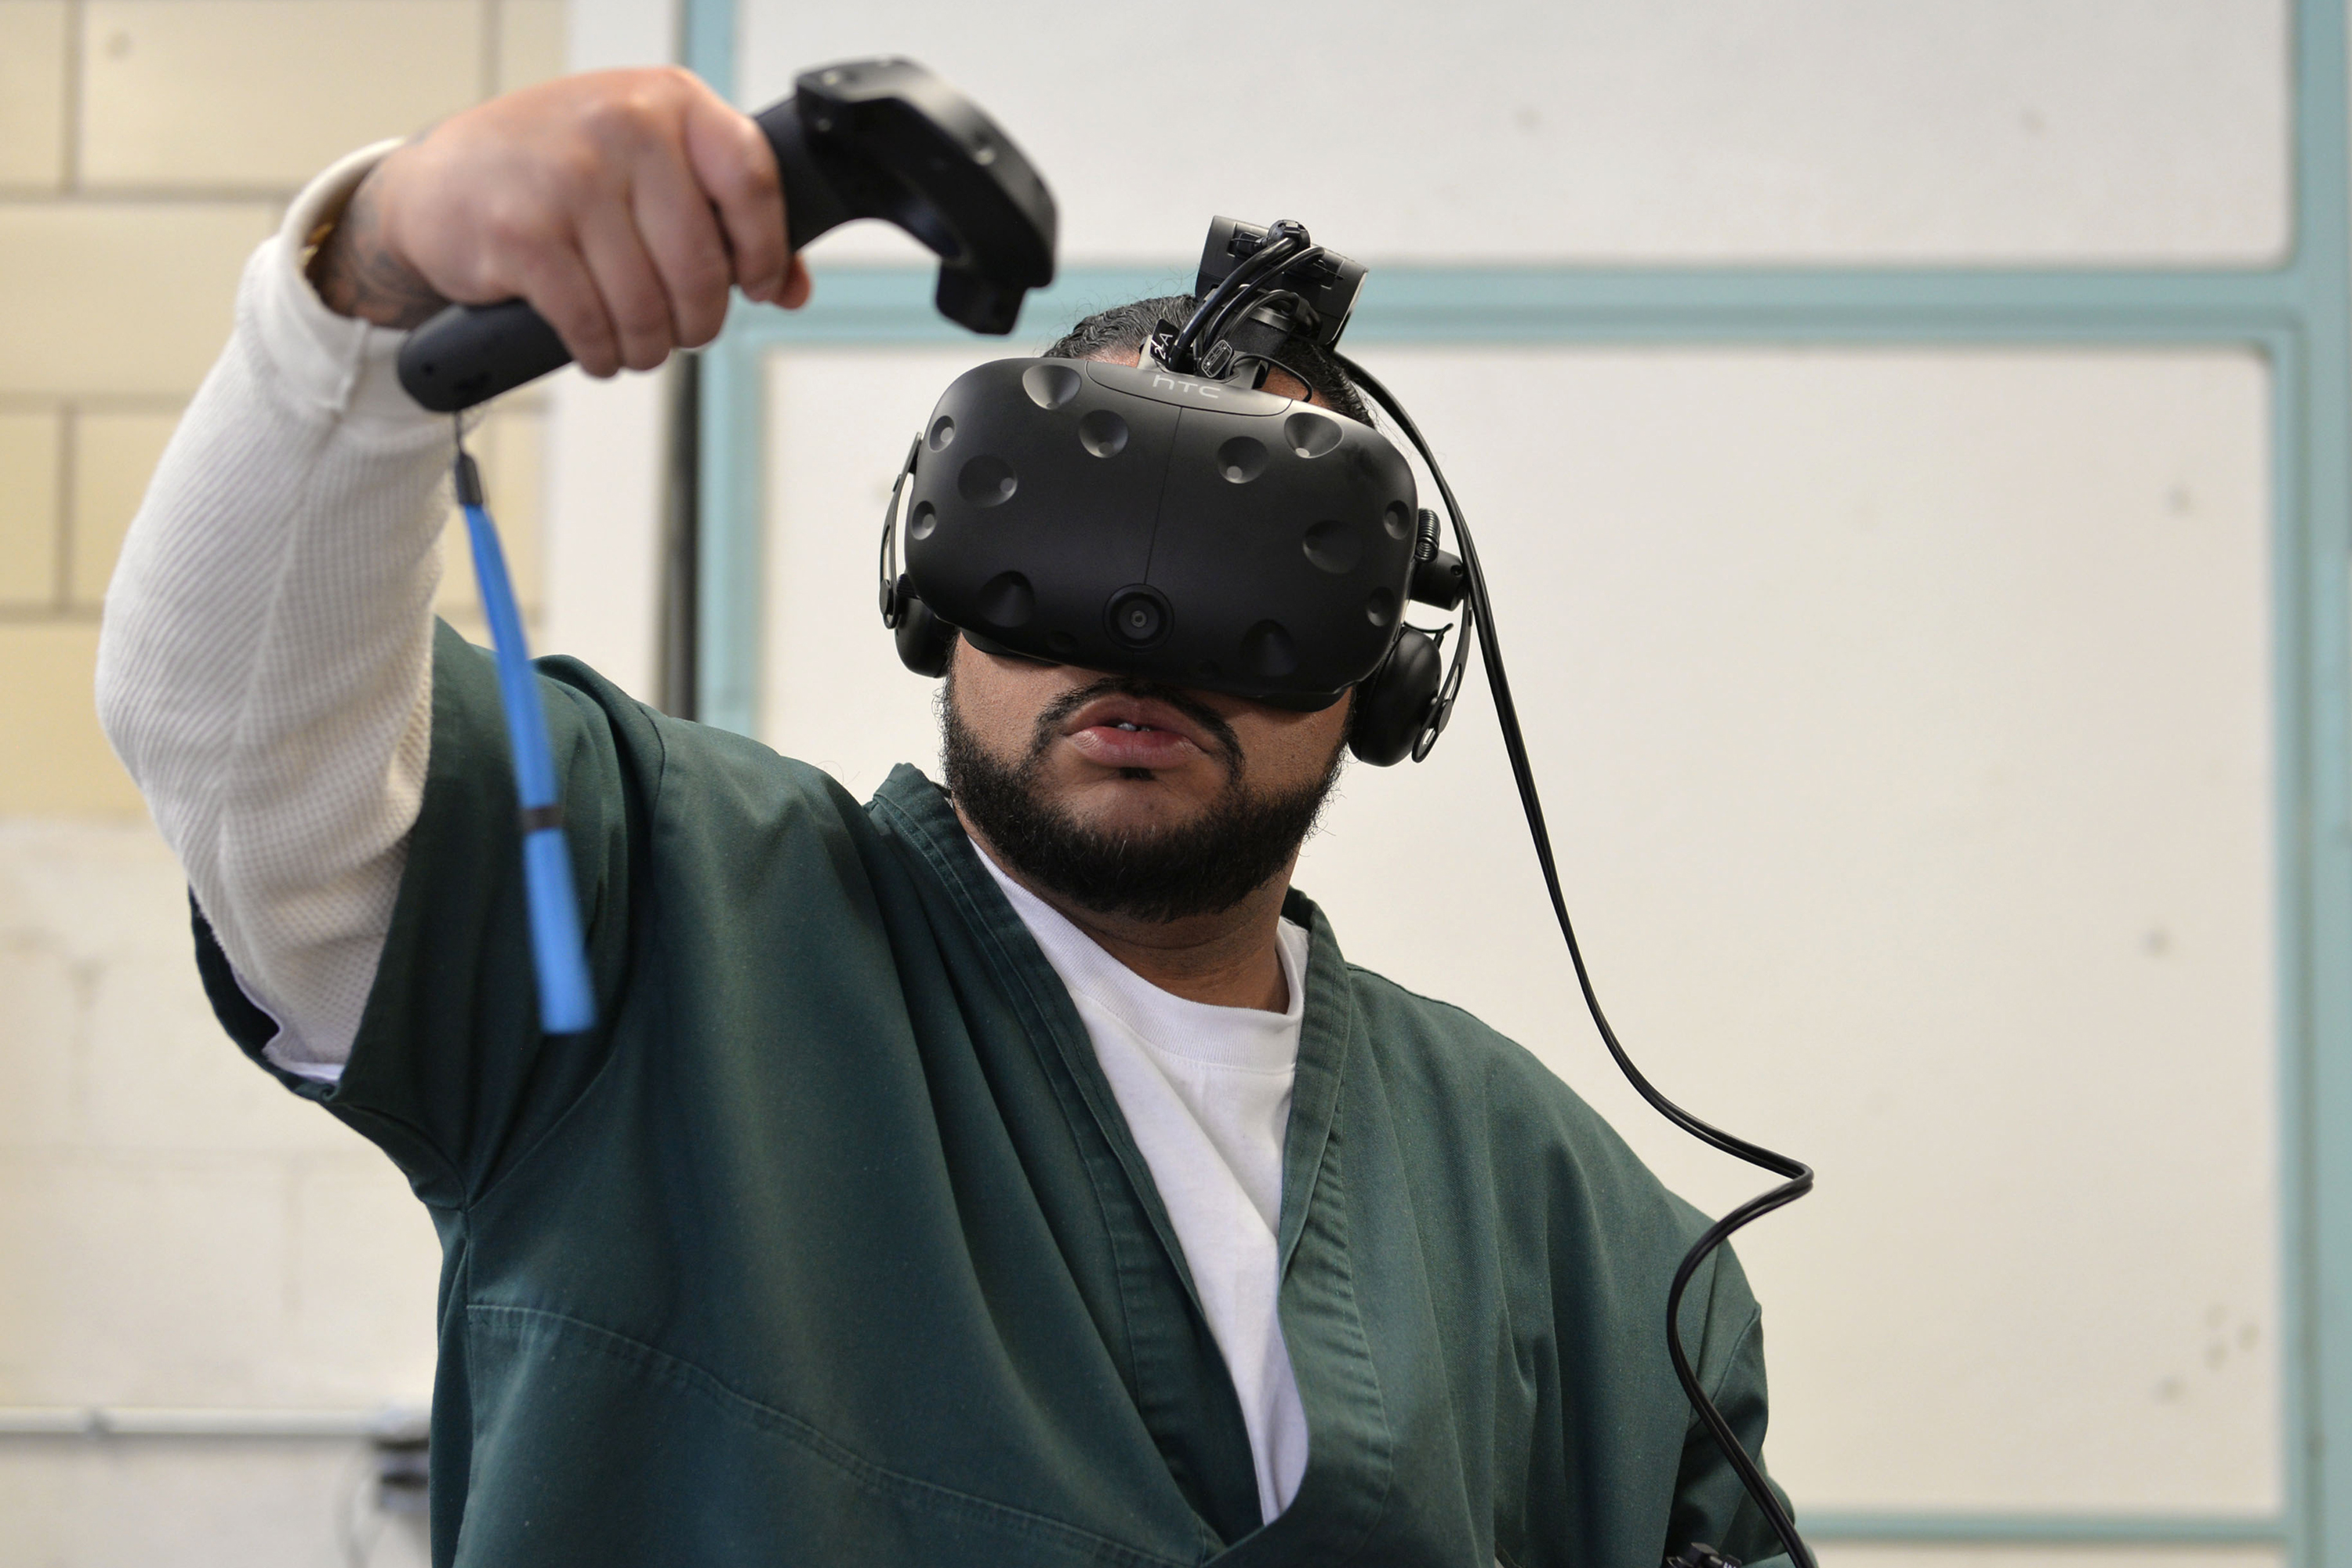 """<p>Leroy Gardenhire uses virtual reality inside the<span style=""""color: rgb(64, 69, 64);"""">Fremont Correctional Facility in</span>Cañon<span style=""""color: rgb(64, 69, 64);"""">City</span> to simulate doing laundry in a laundromat.</p>"""